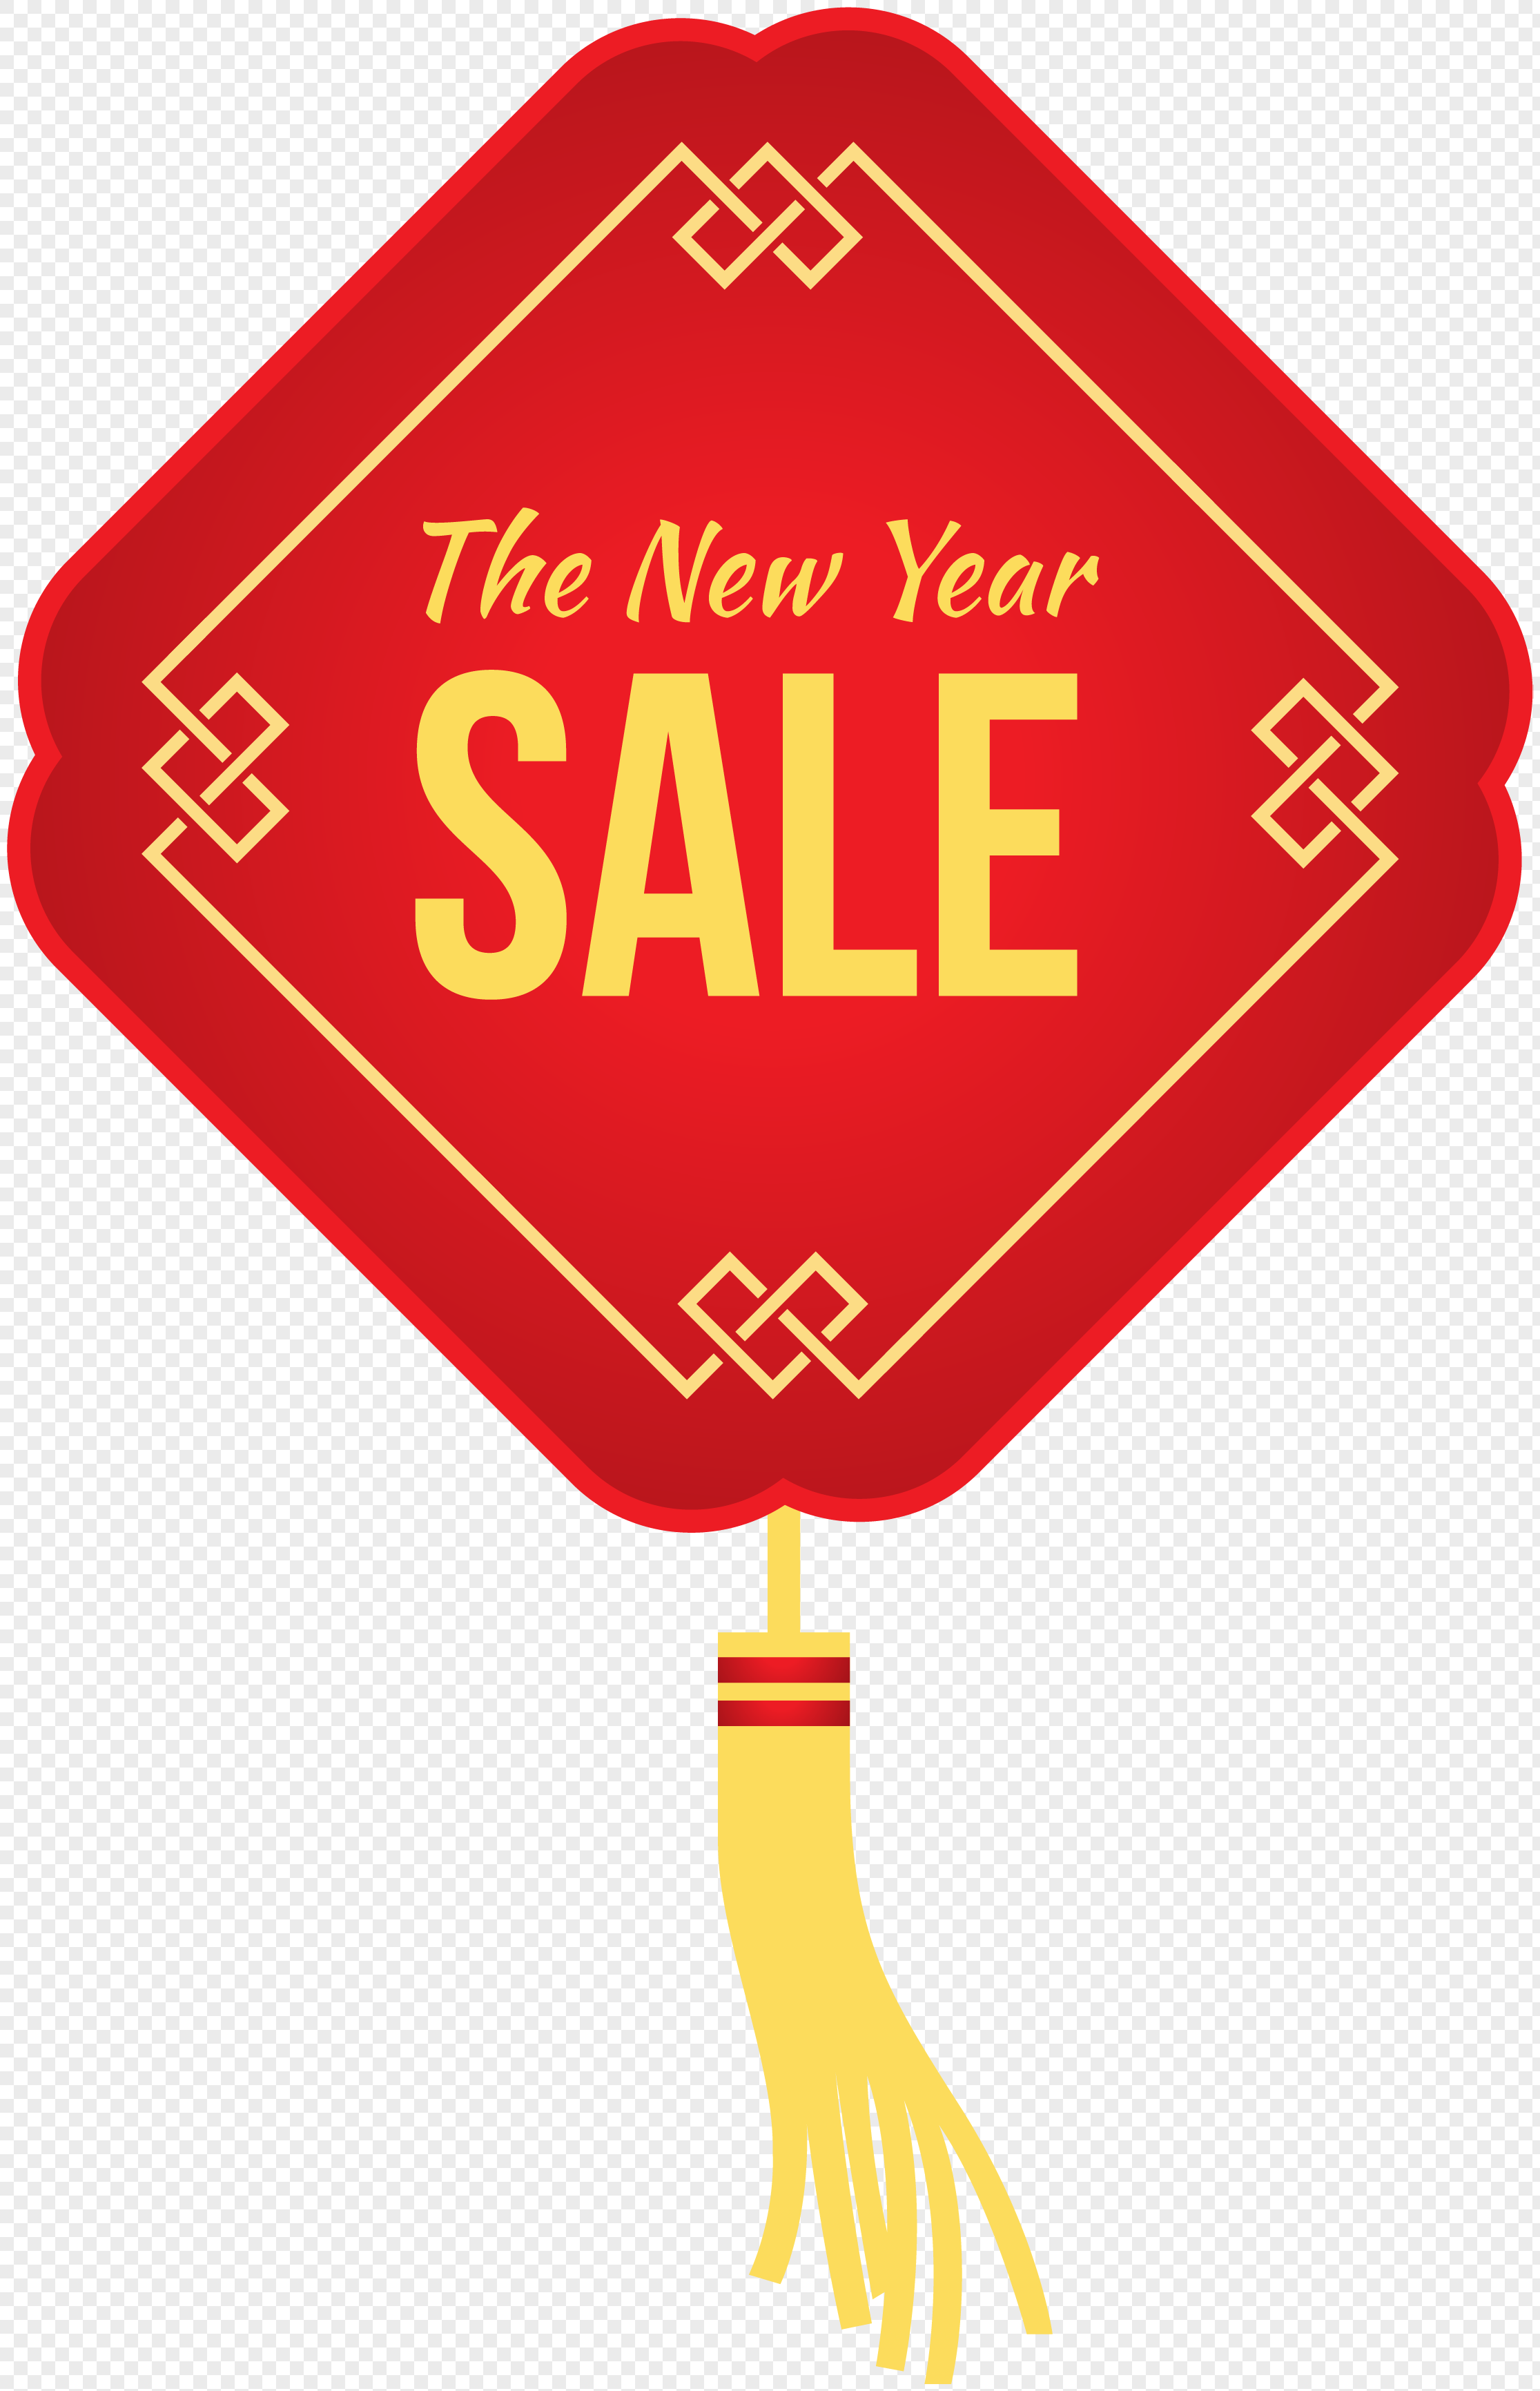 hand painted new year chinese knot promotion label